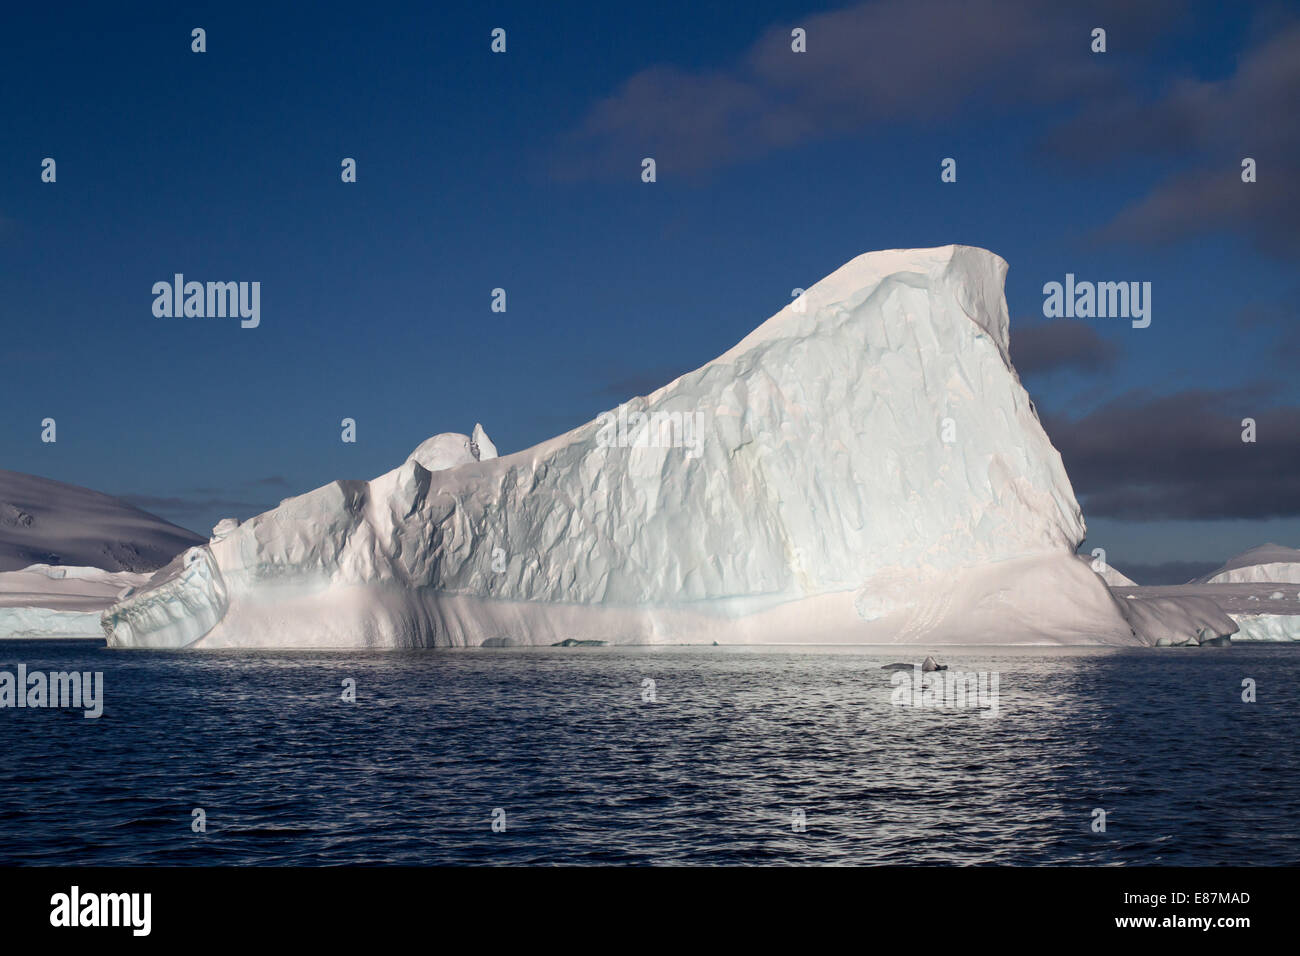 triangular iceberg in Antarctic waters summer cloudy day - Stock Image